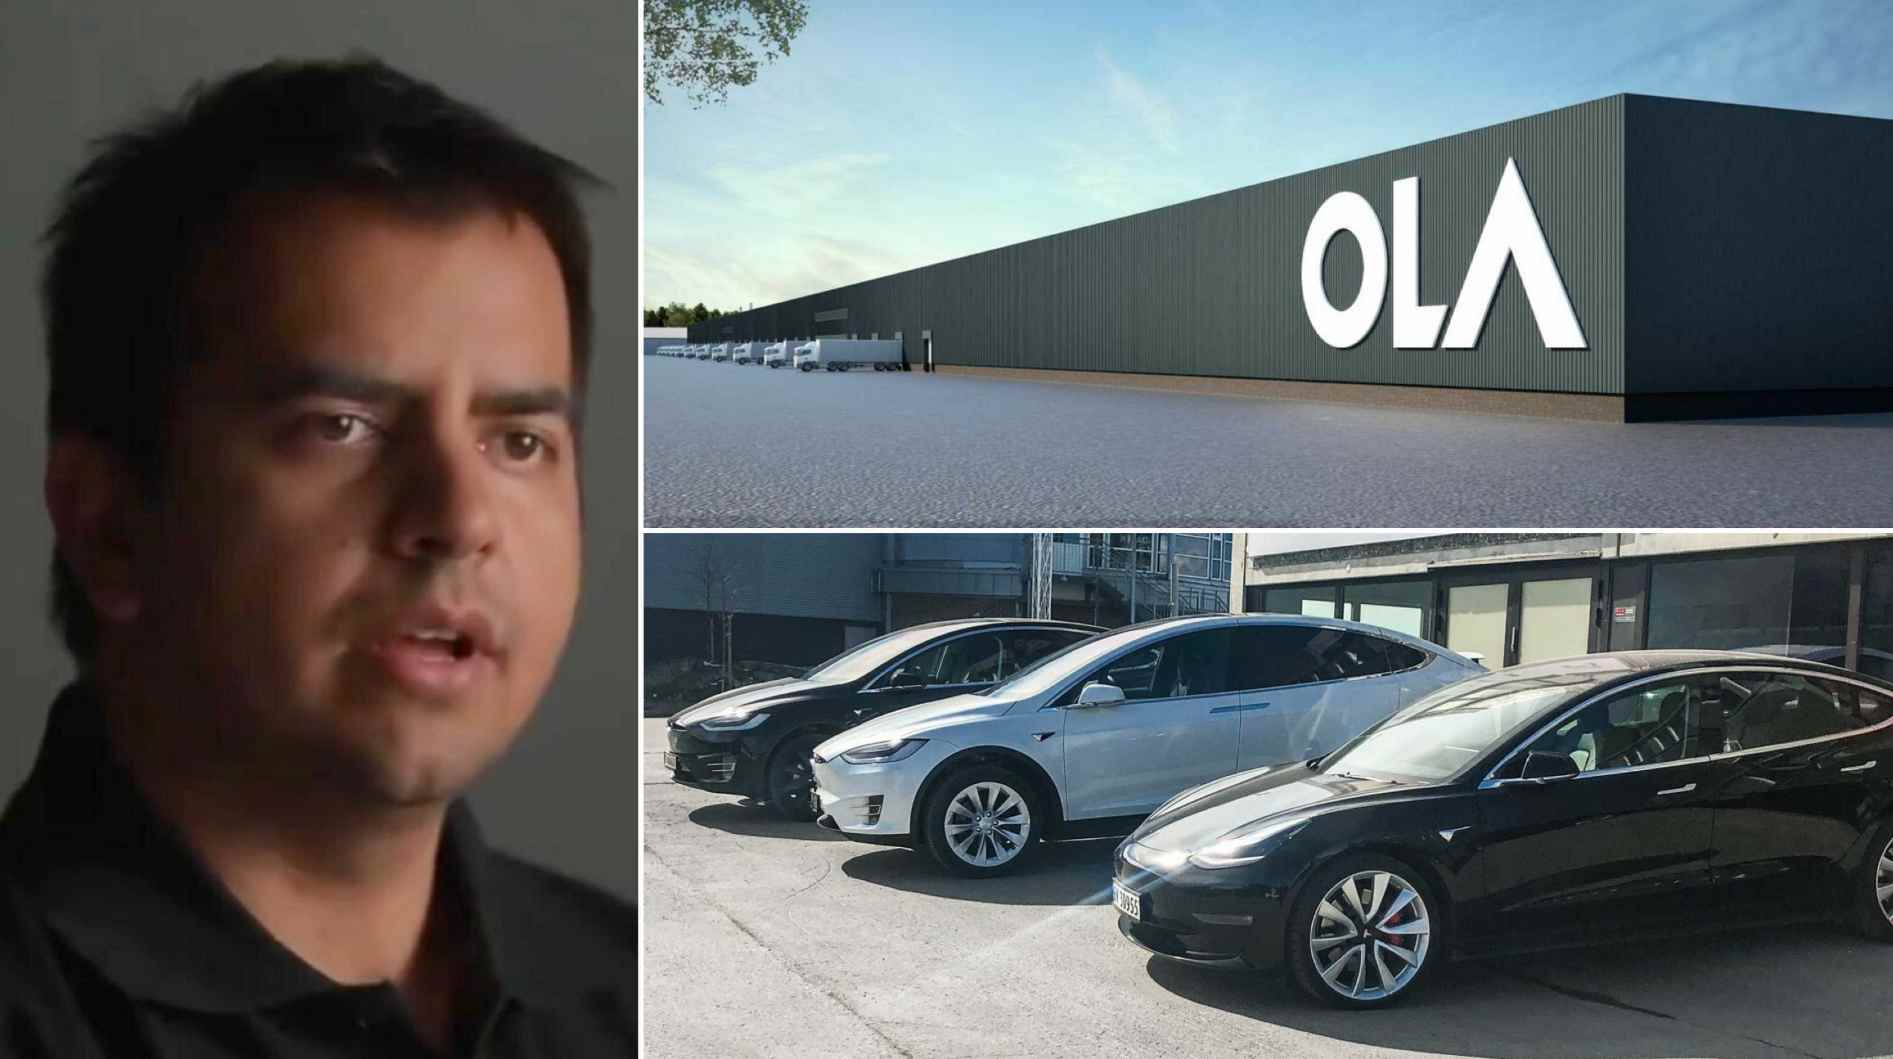 Ola Electric CEO Bhavish Aggarwal has opposed calls for a reduction on import duty for EVs. Image: Ola/Tesla